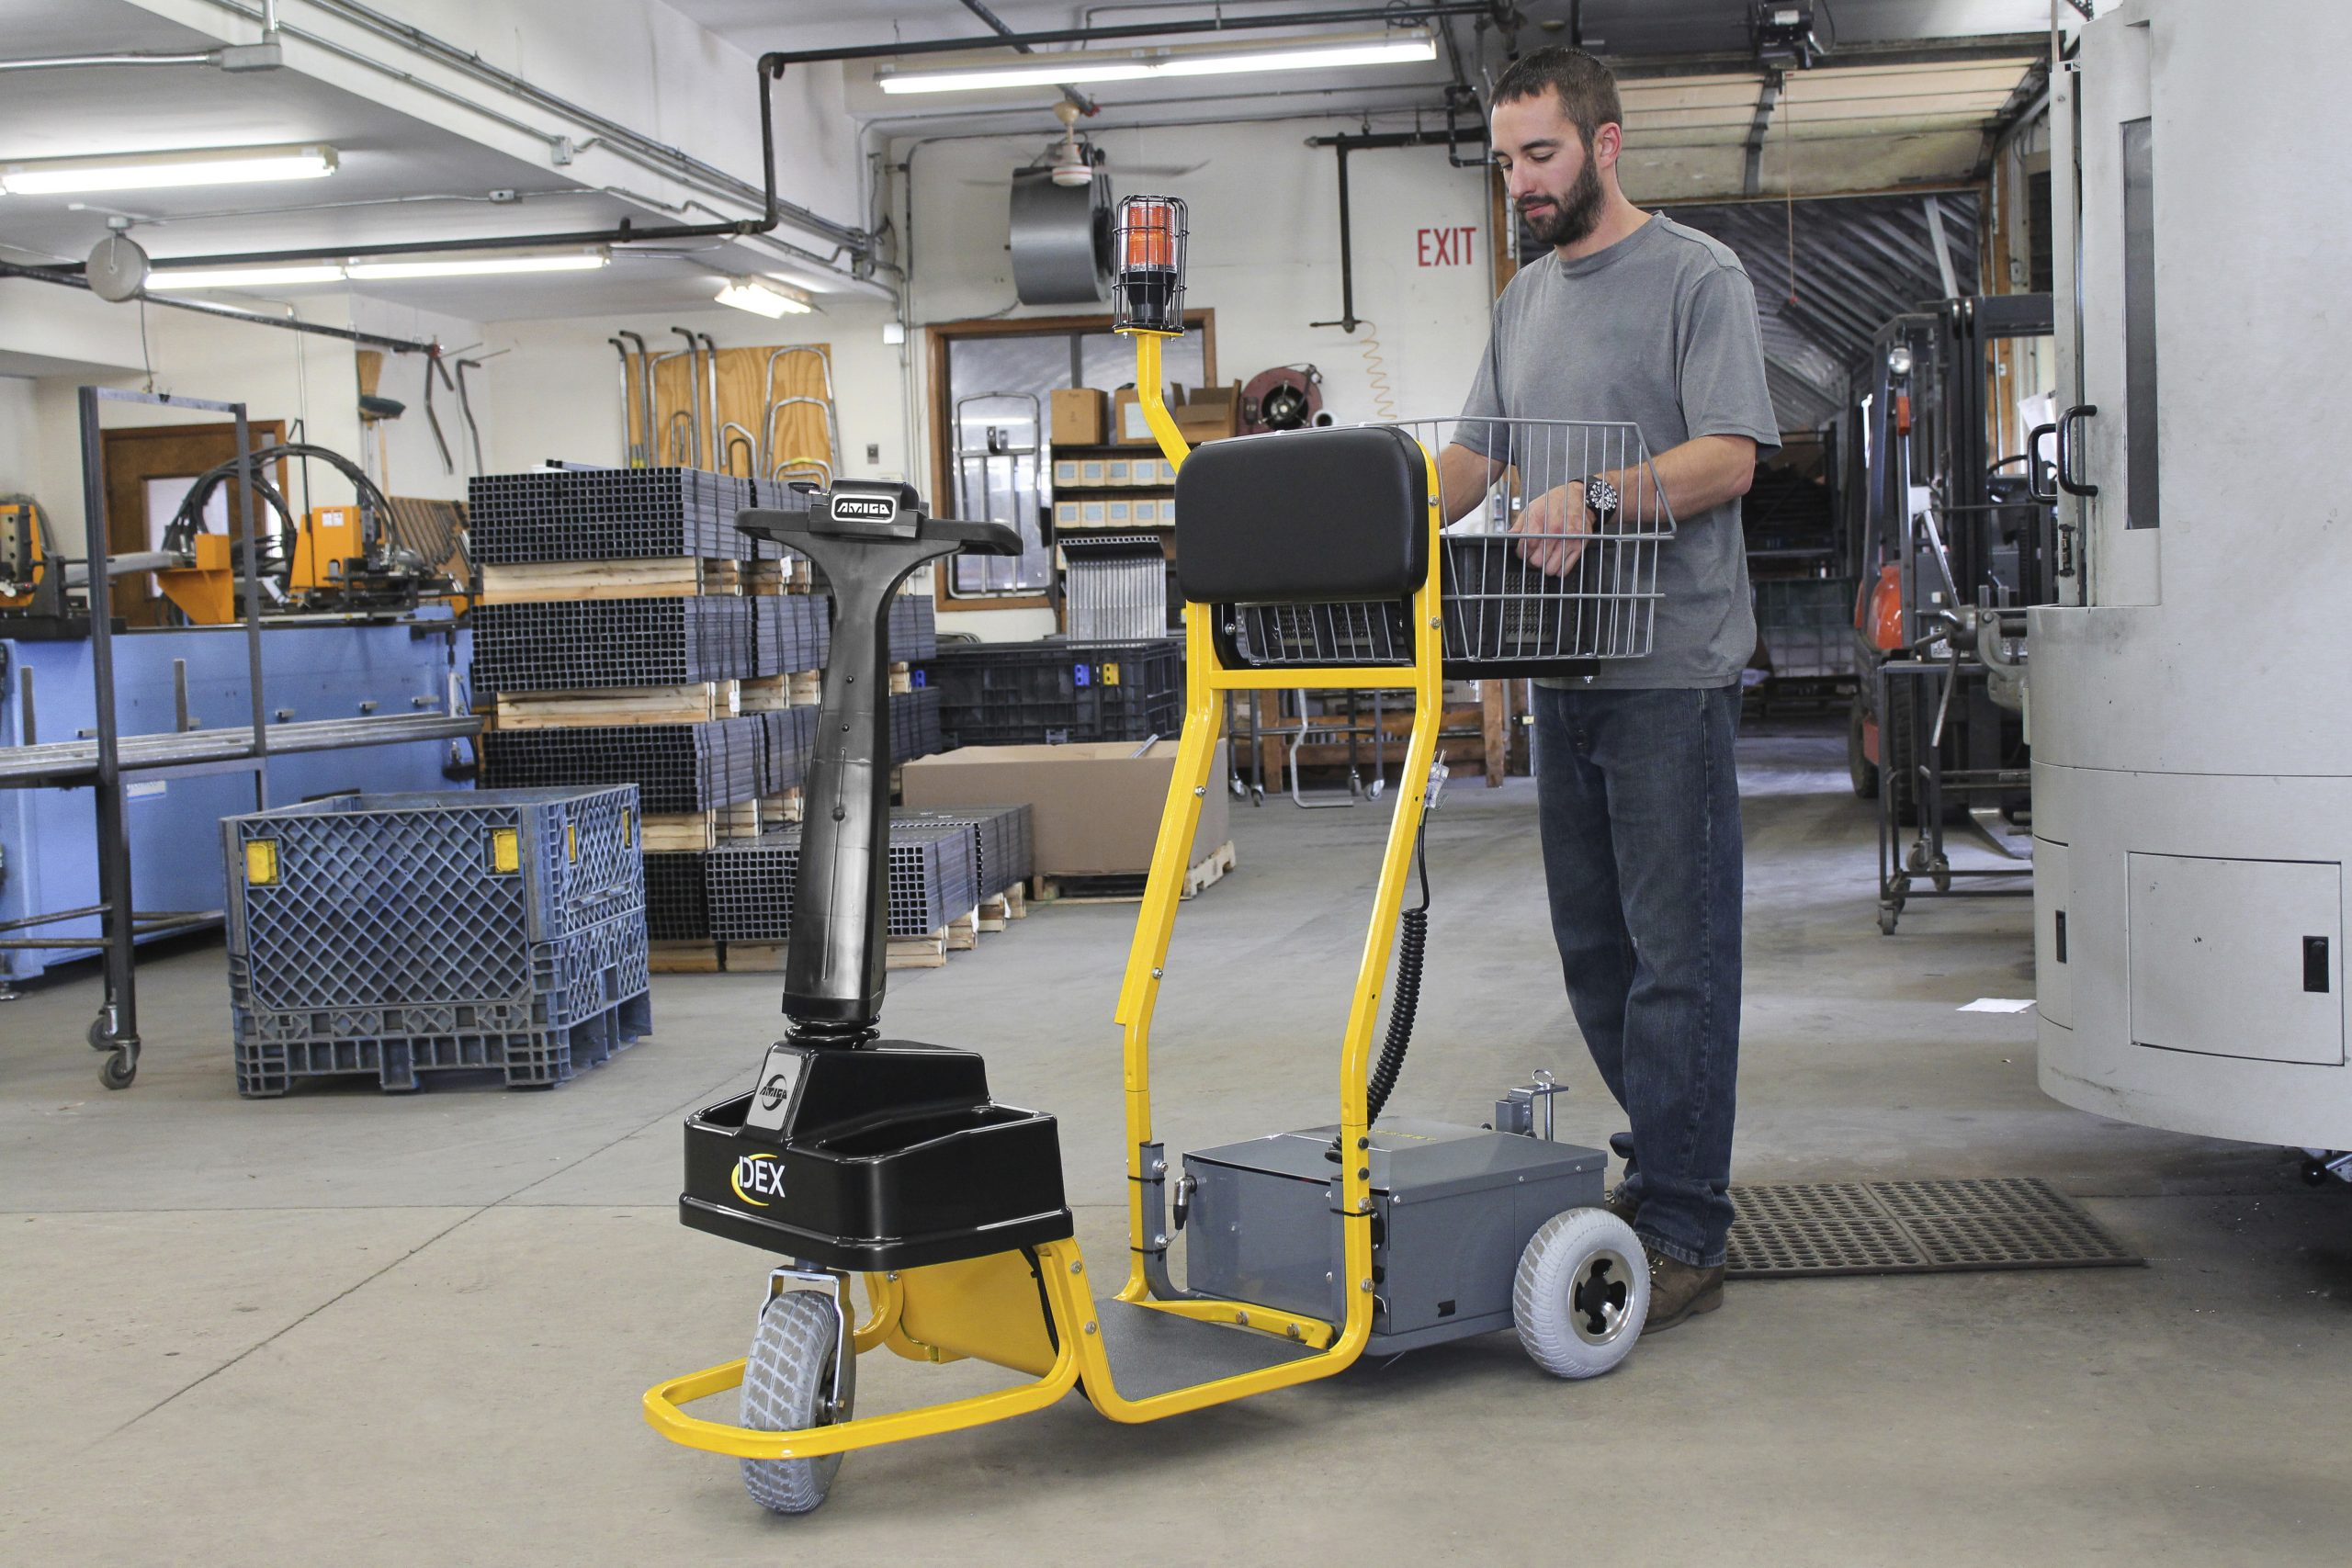 Dex electric tow tractor provides manufacturing solutions